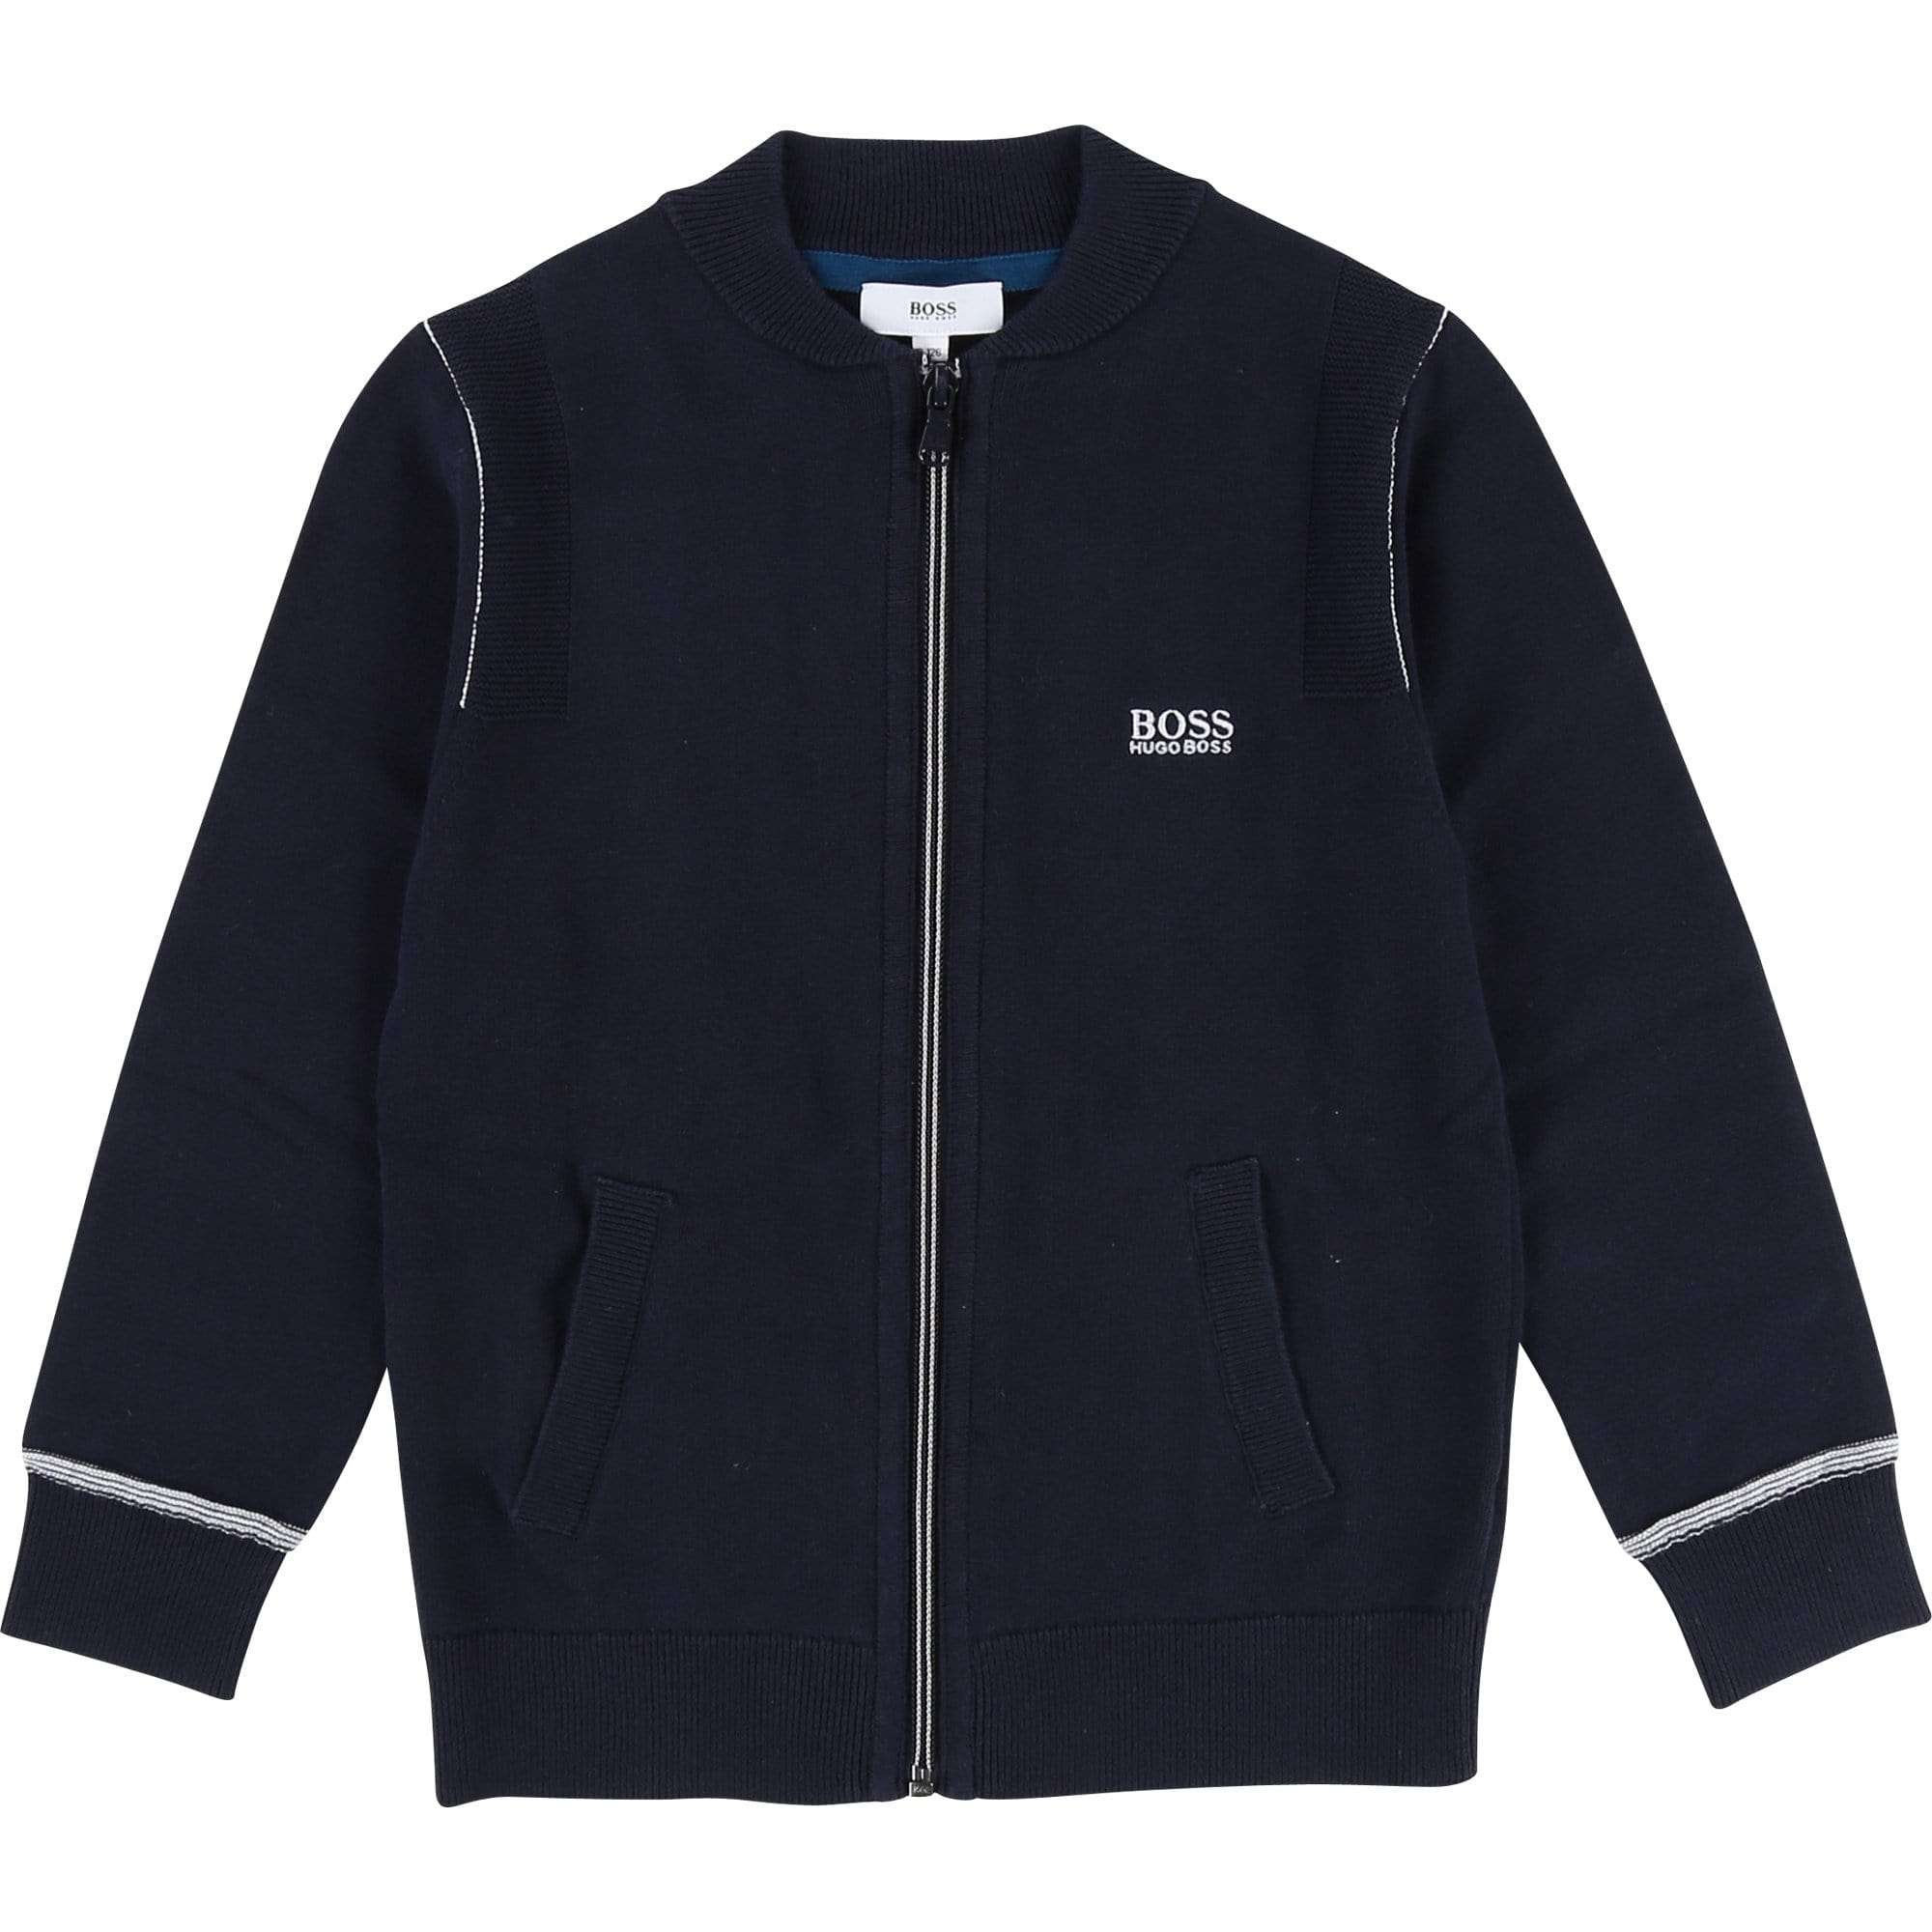 Hugo Boss Navy Cardigan